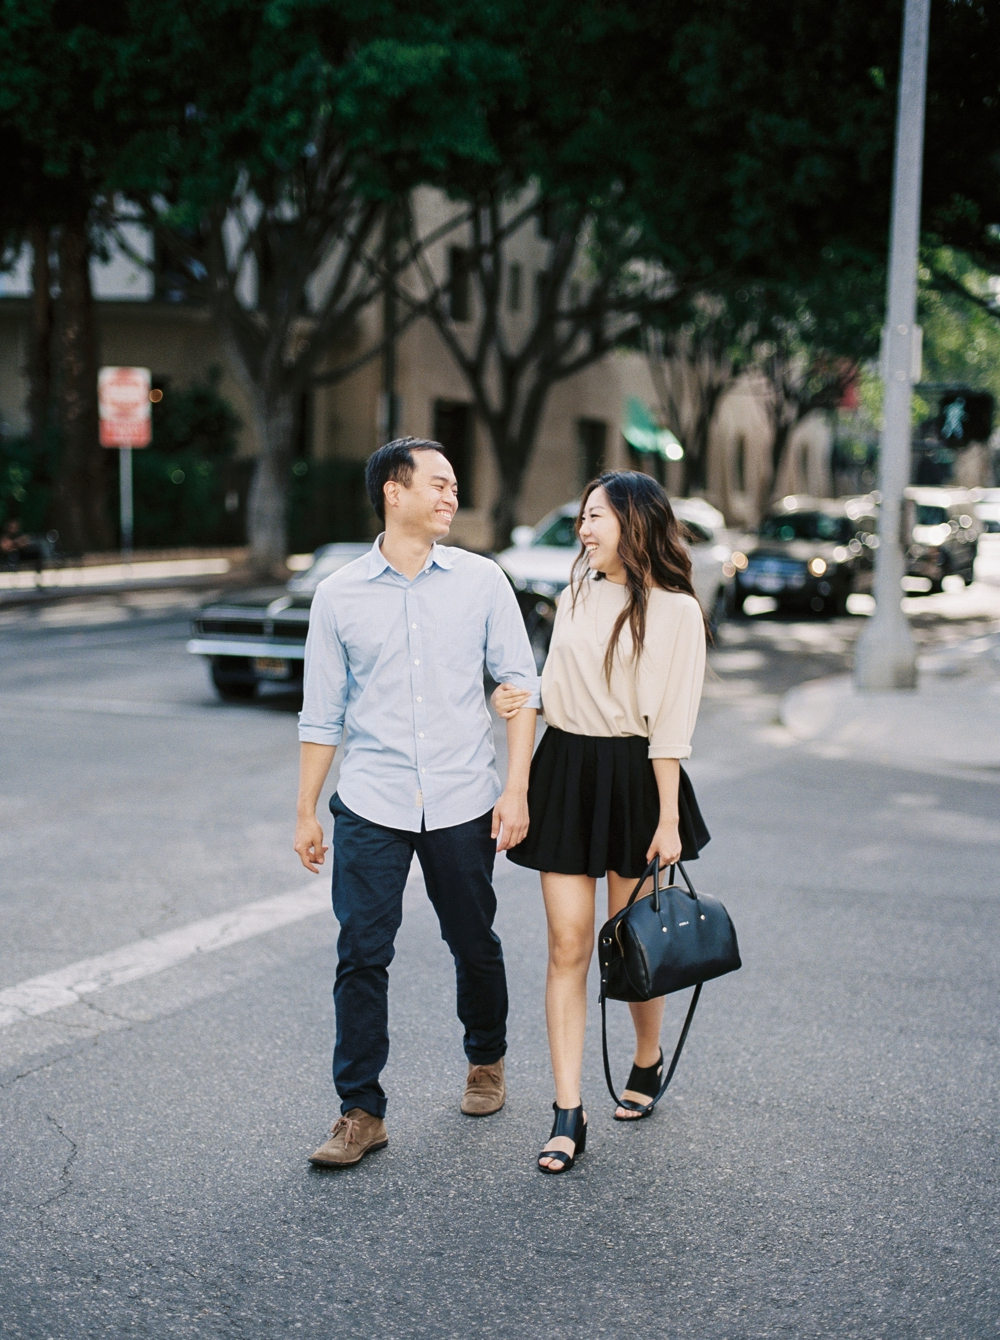 pasadena engagement photography czar goss 2.jpg